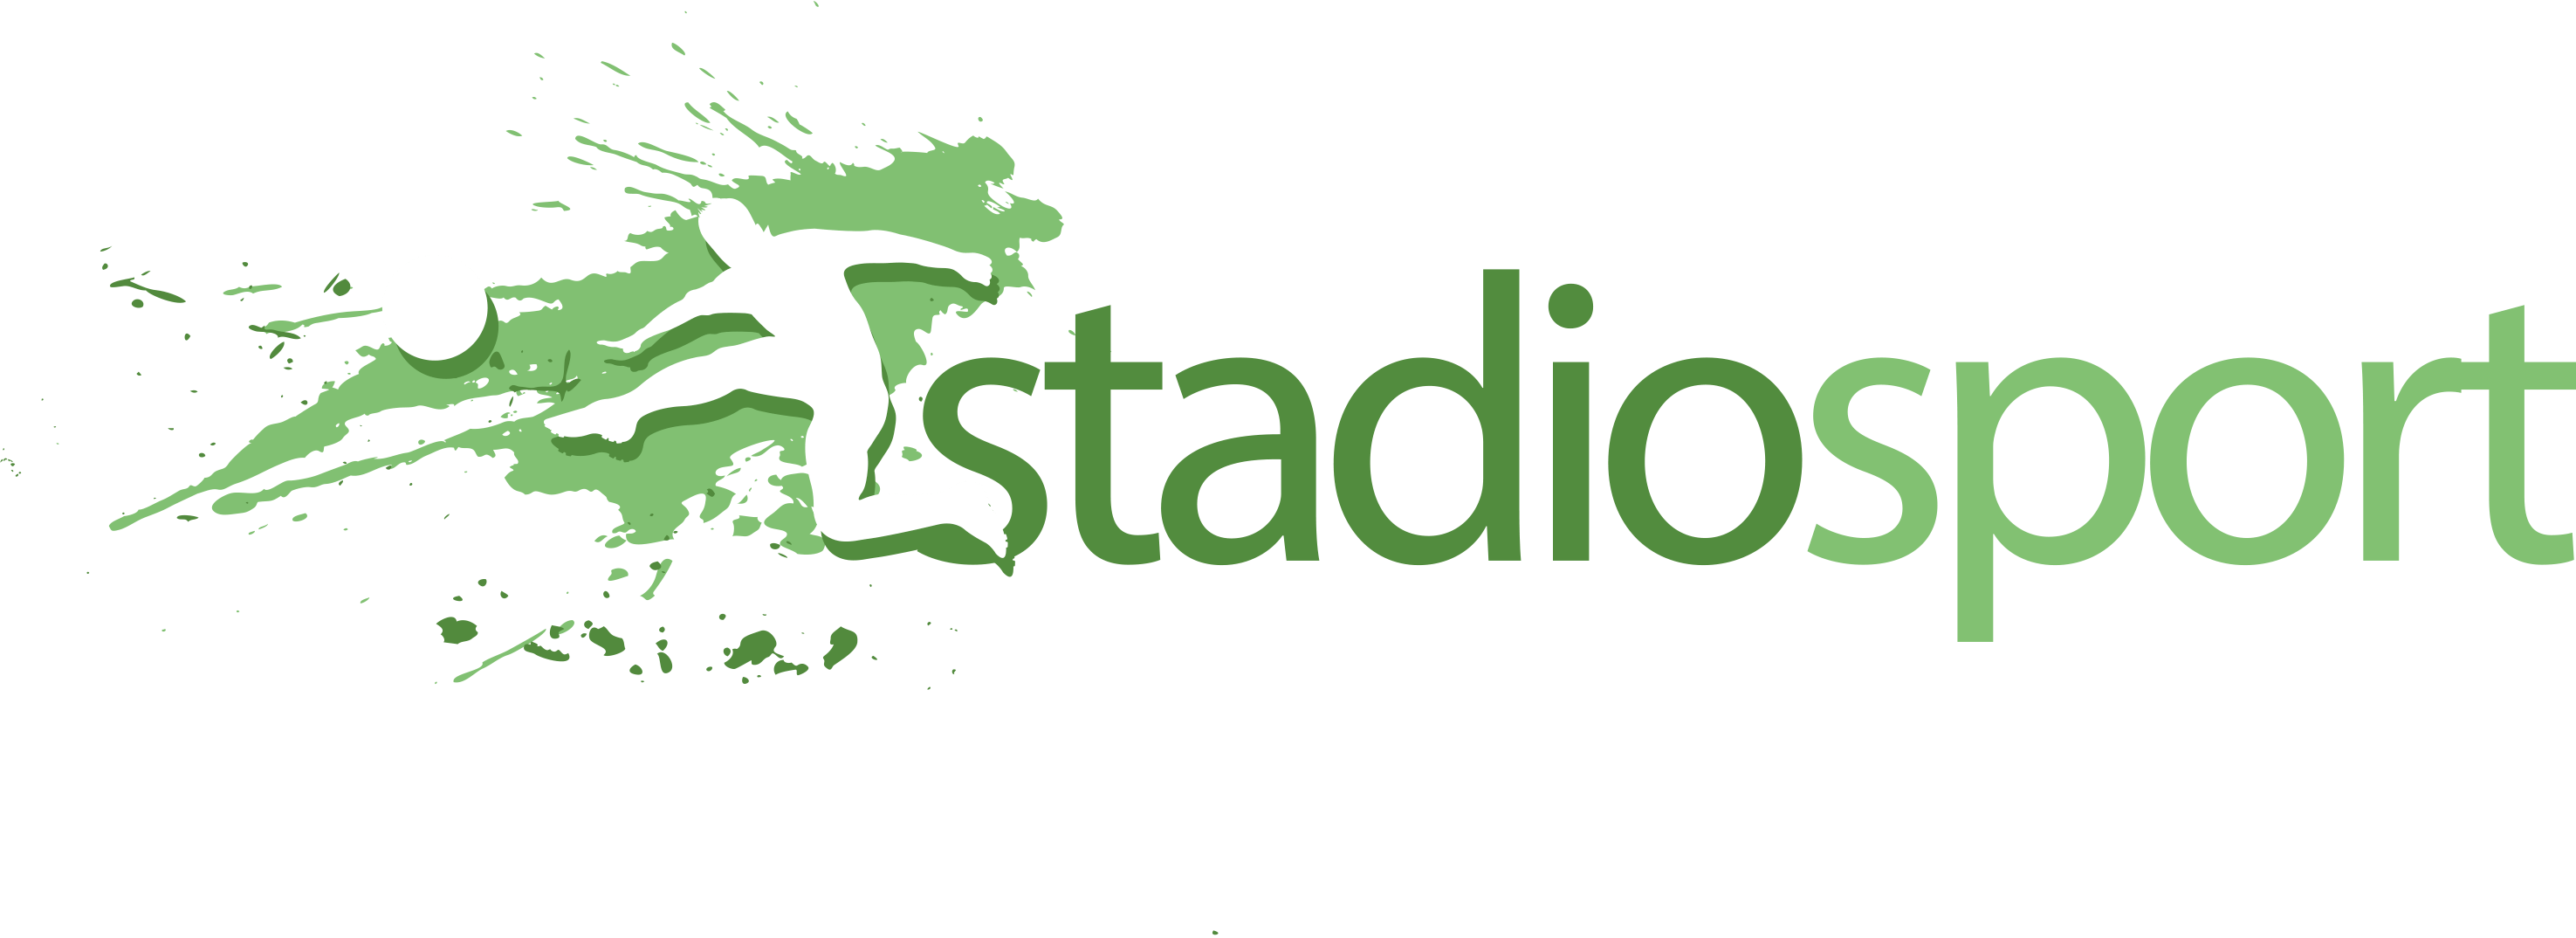 stadiosport-senza-it